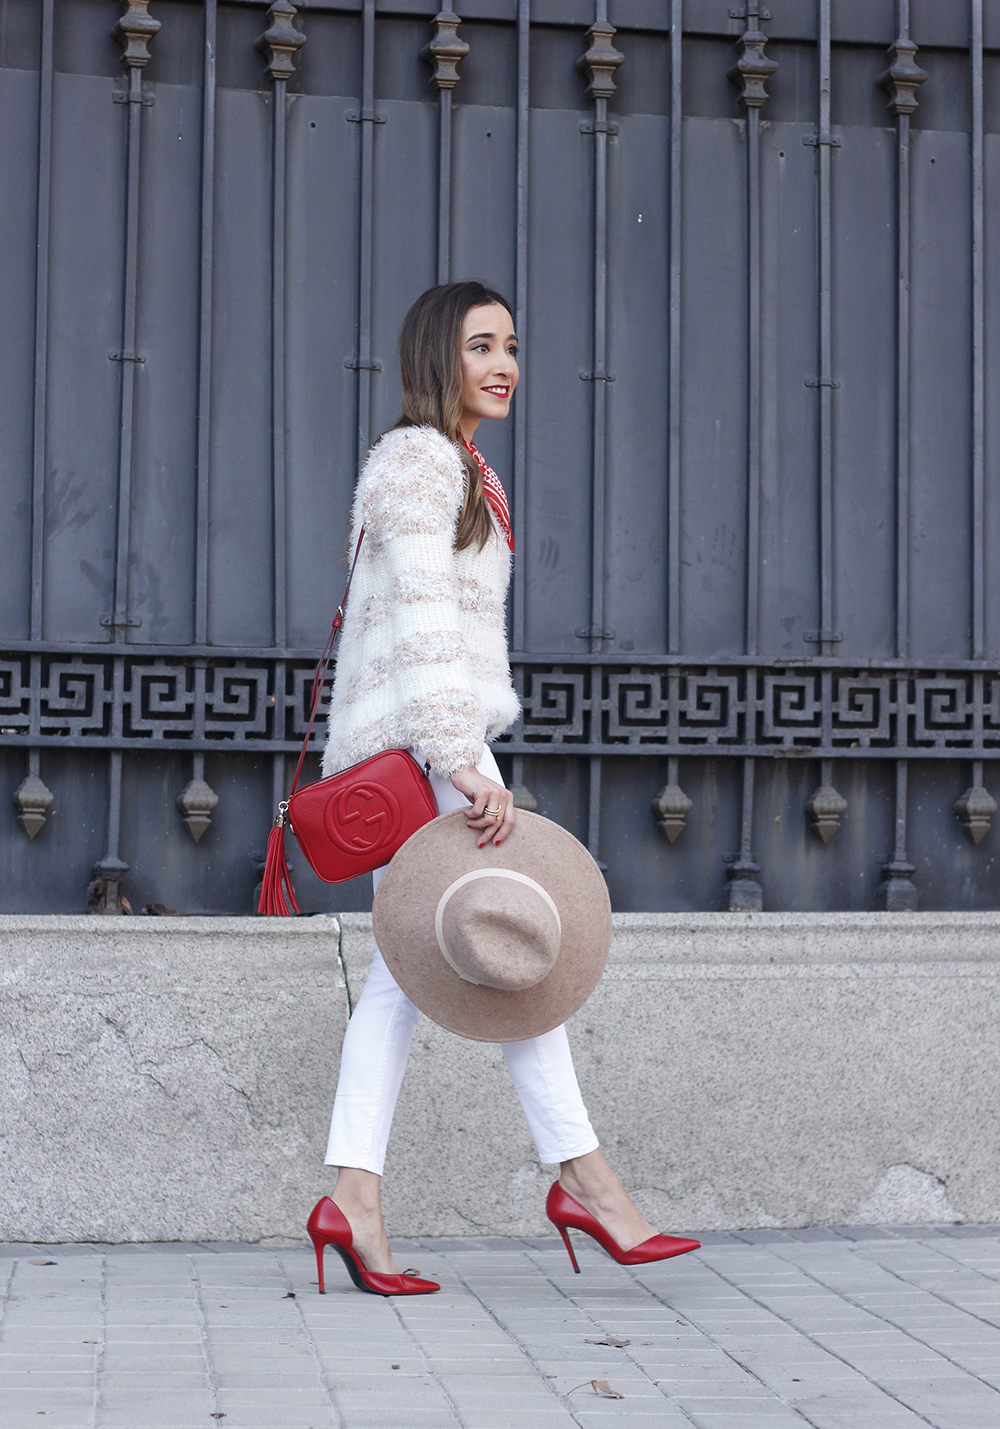 907a57880c24 ... white outfit touch of red gucci bag primark hat winter outfit 201802 ...